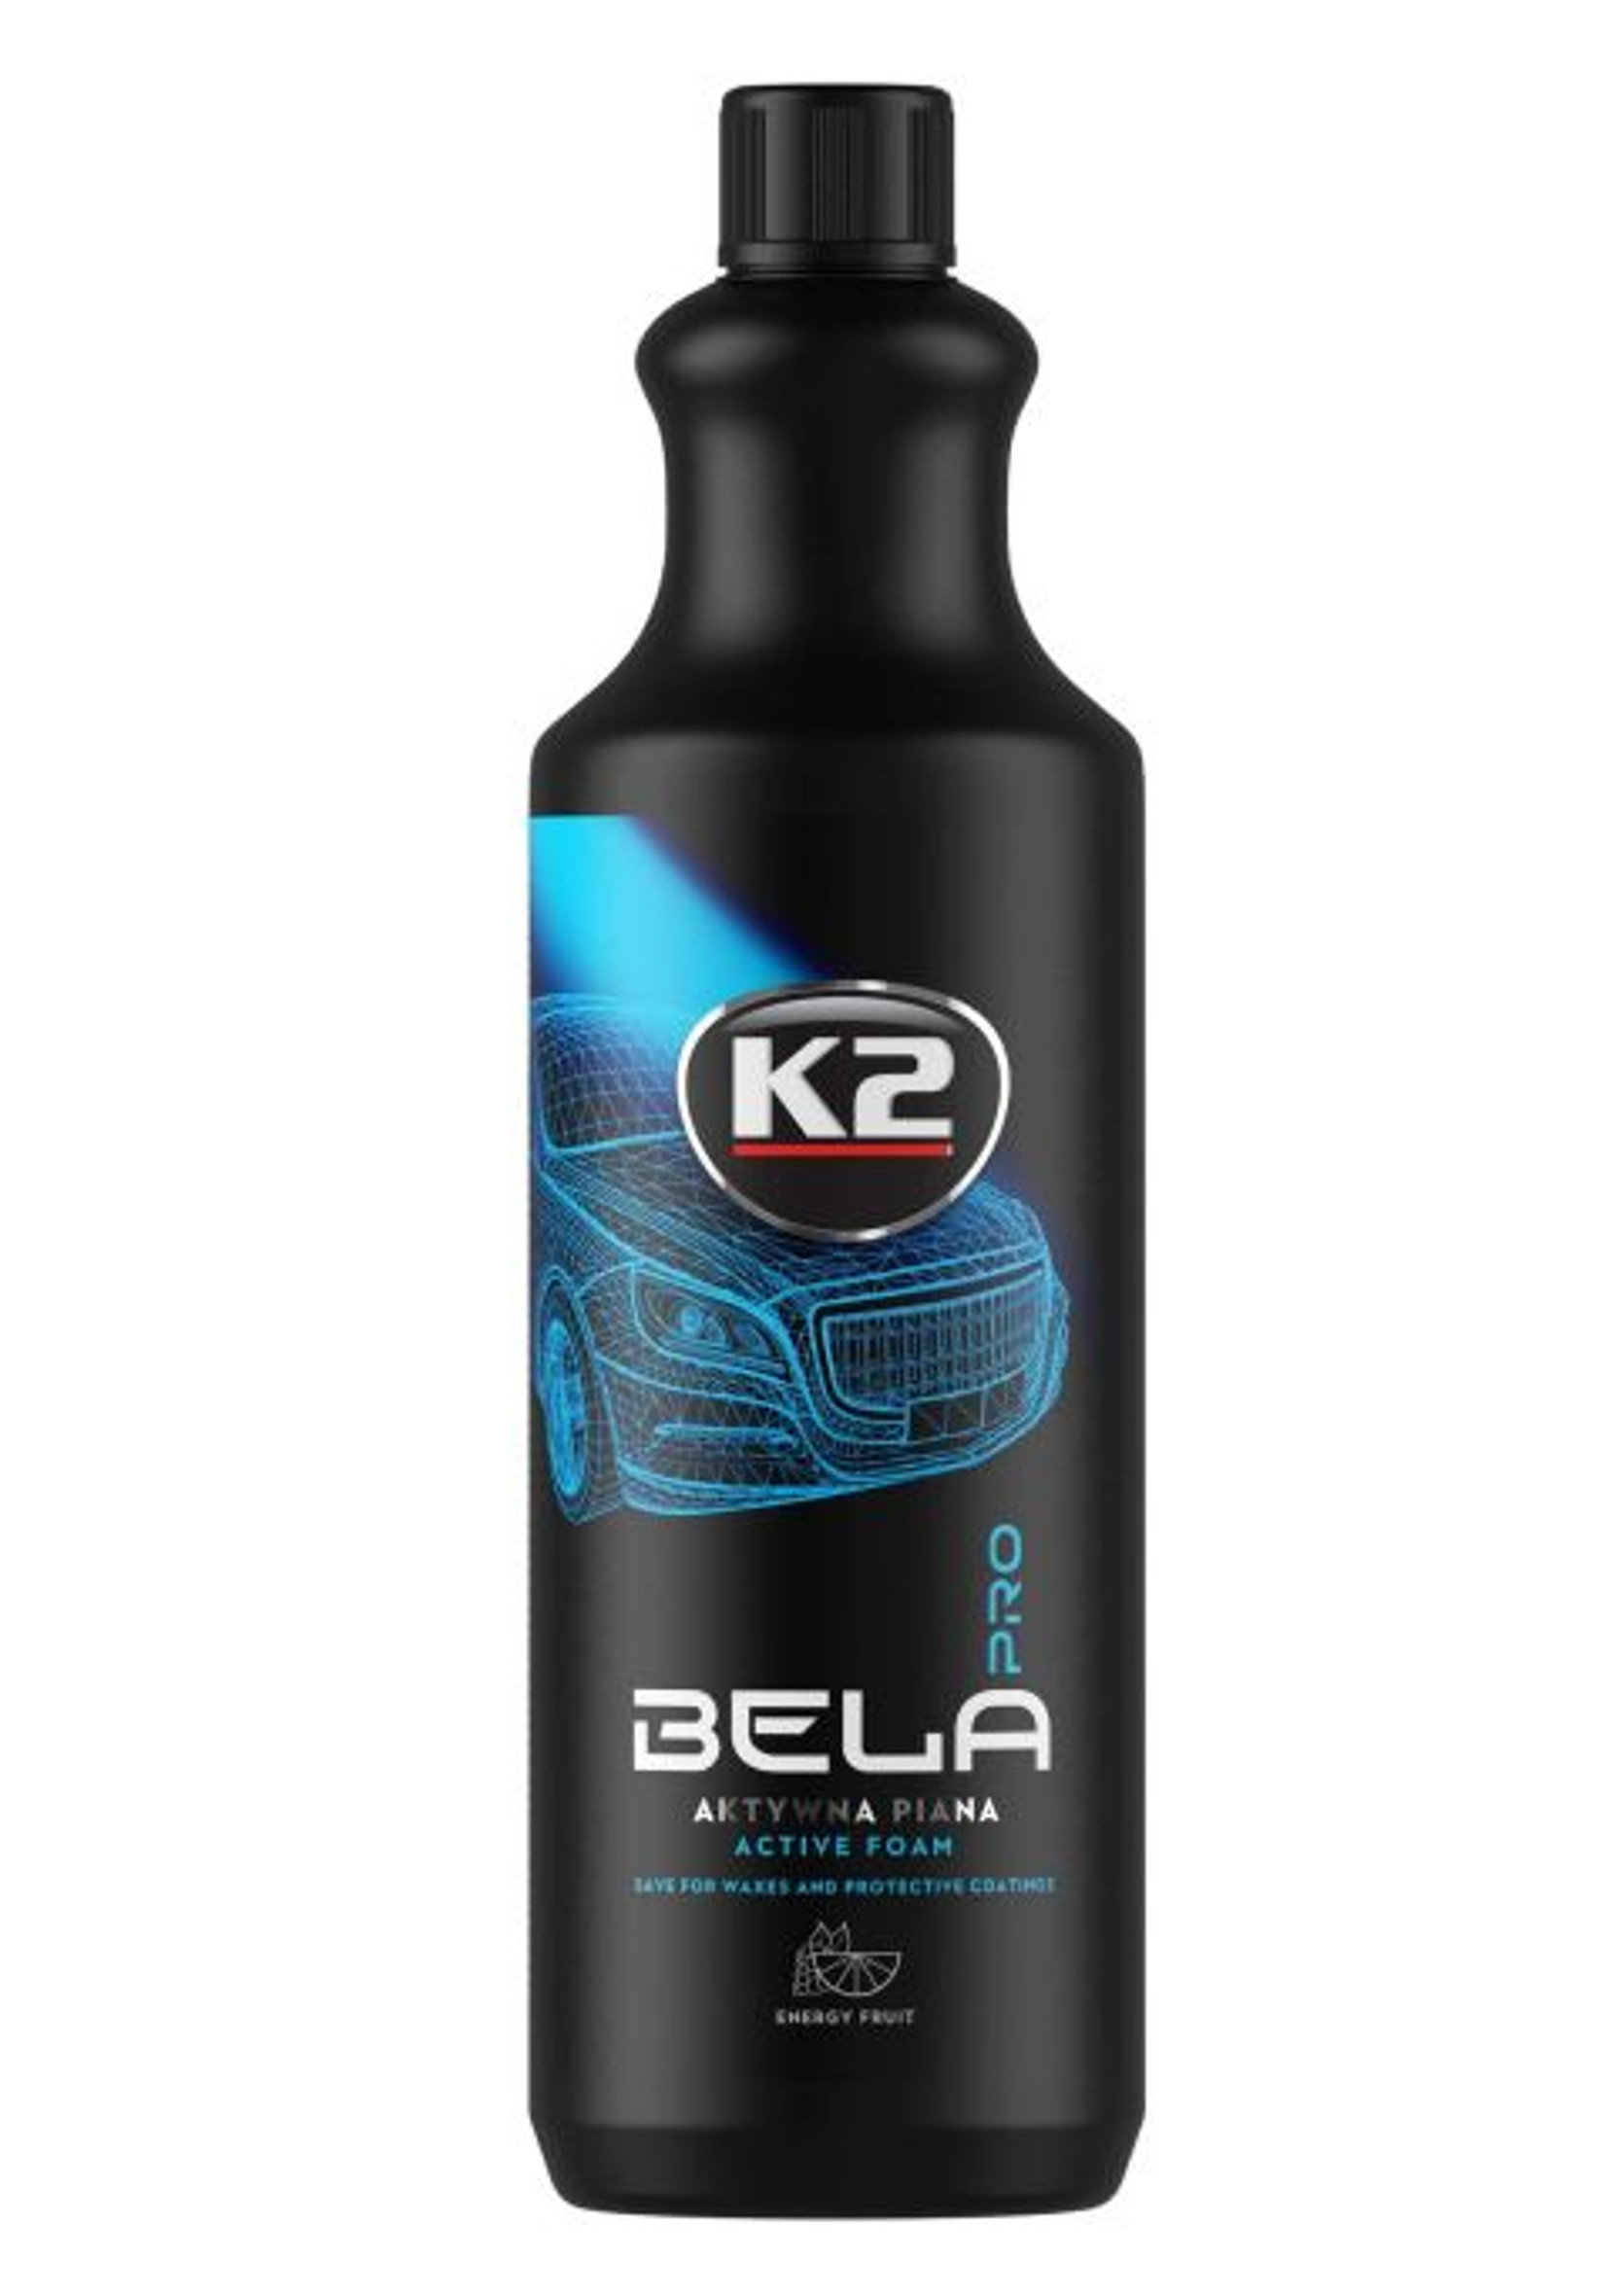 K2 Bela PRO 1L Energy Fruit Piana Aktywna